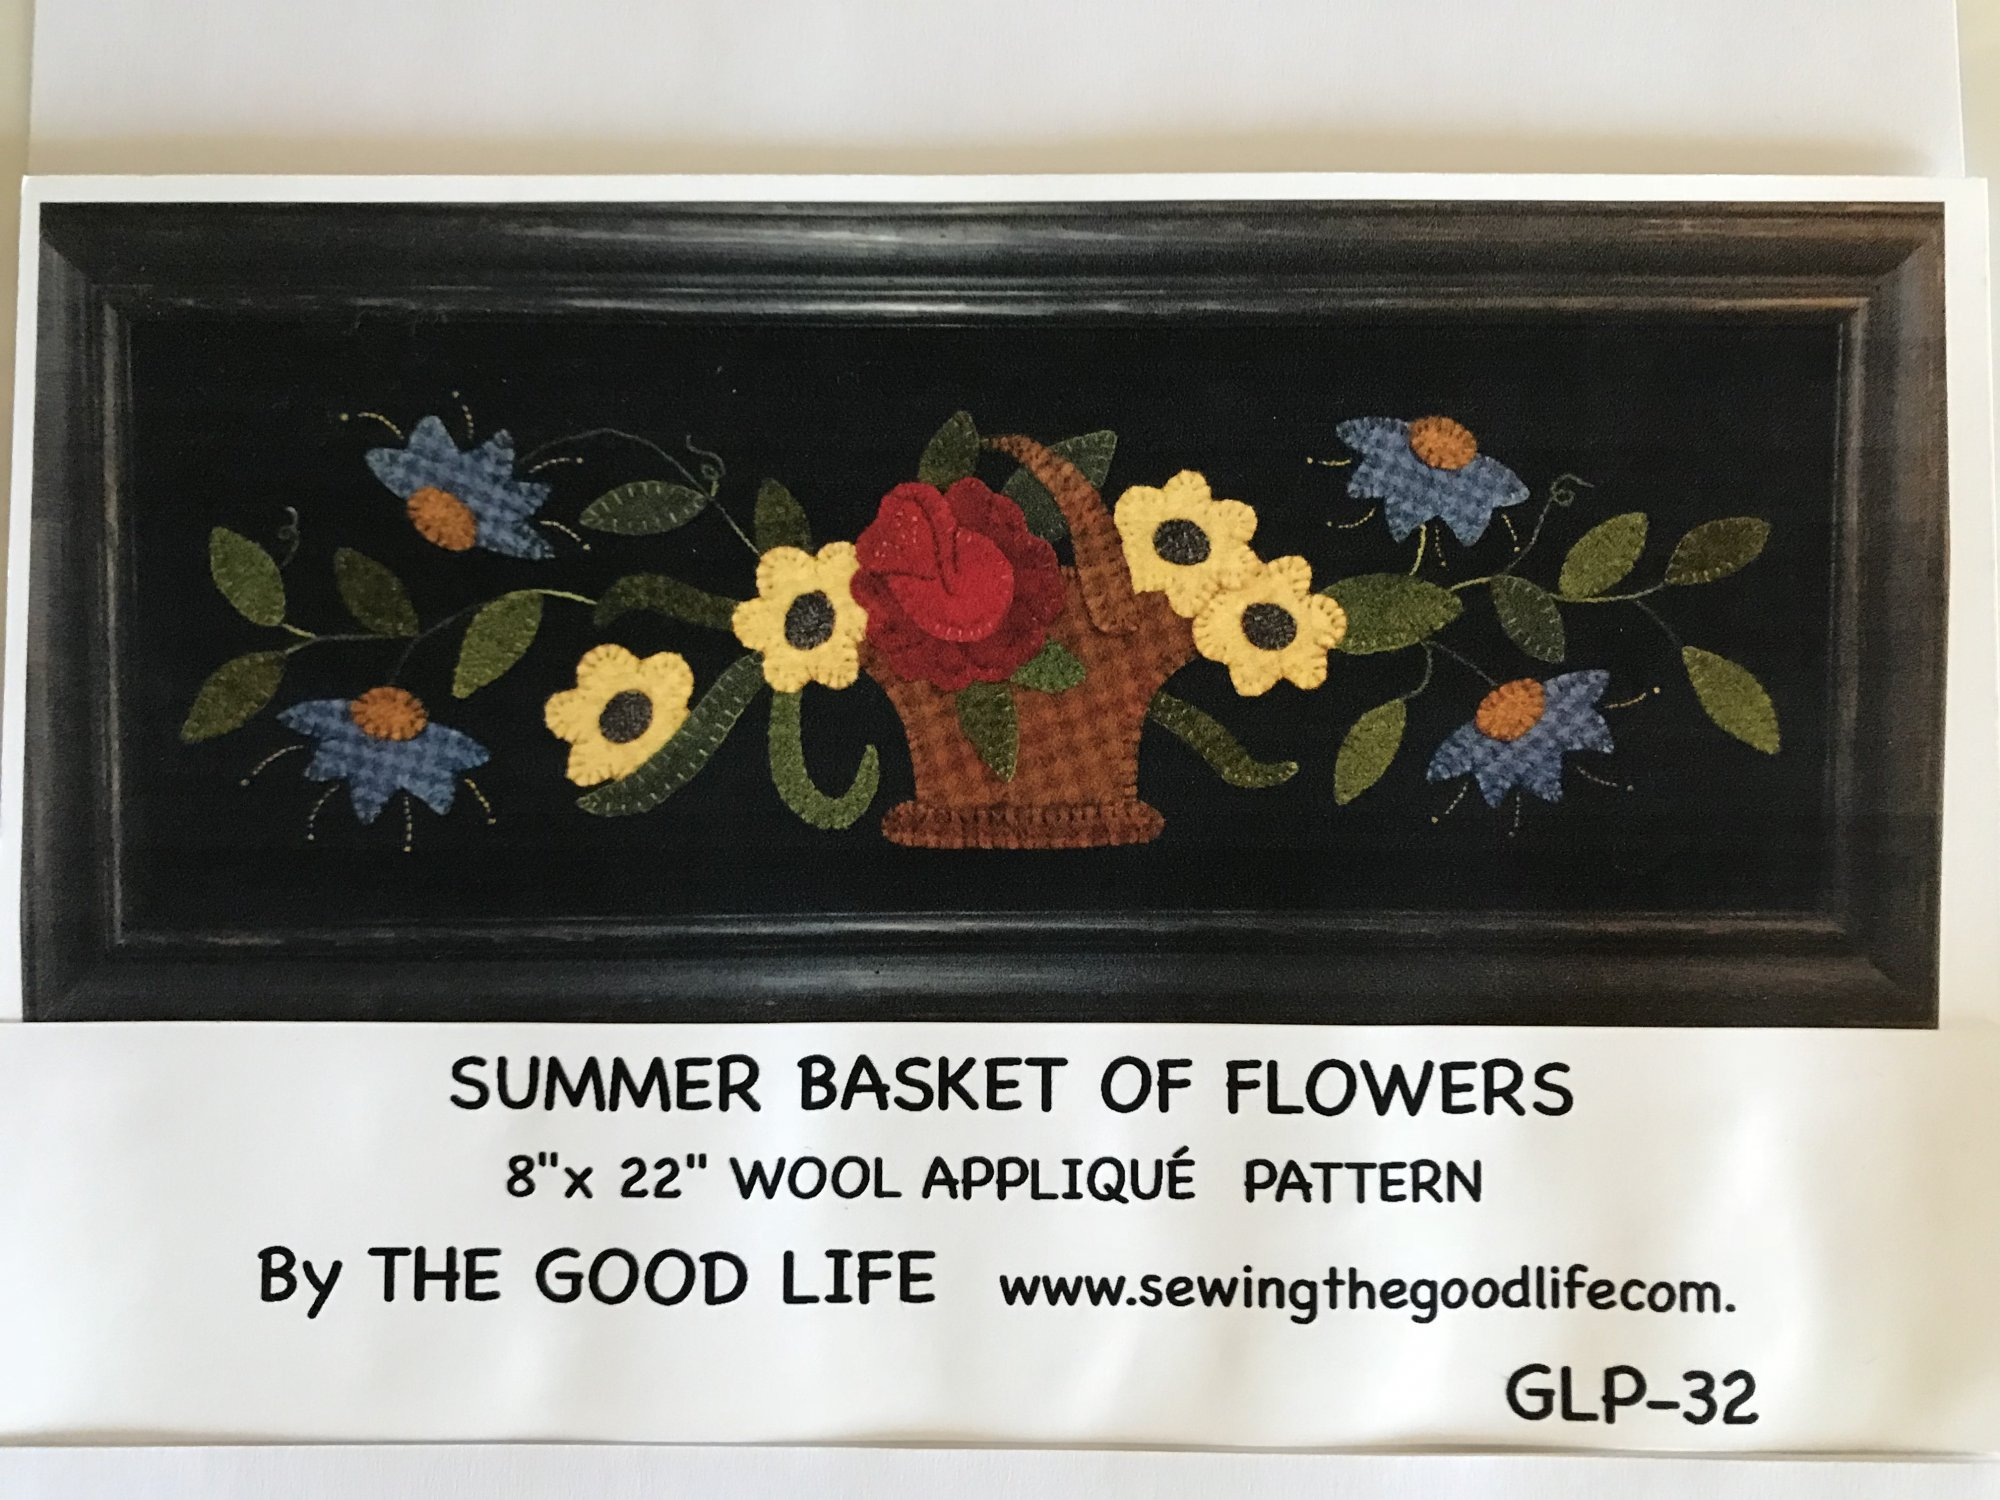 Summer Basket of Flowers GLP-32